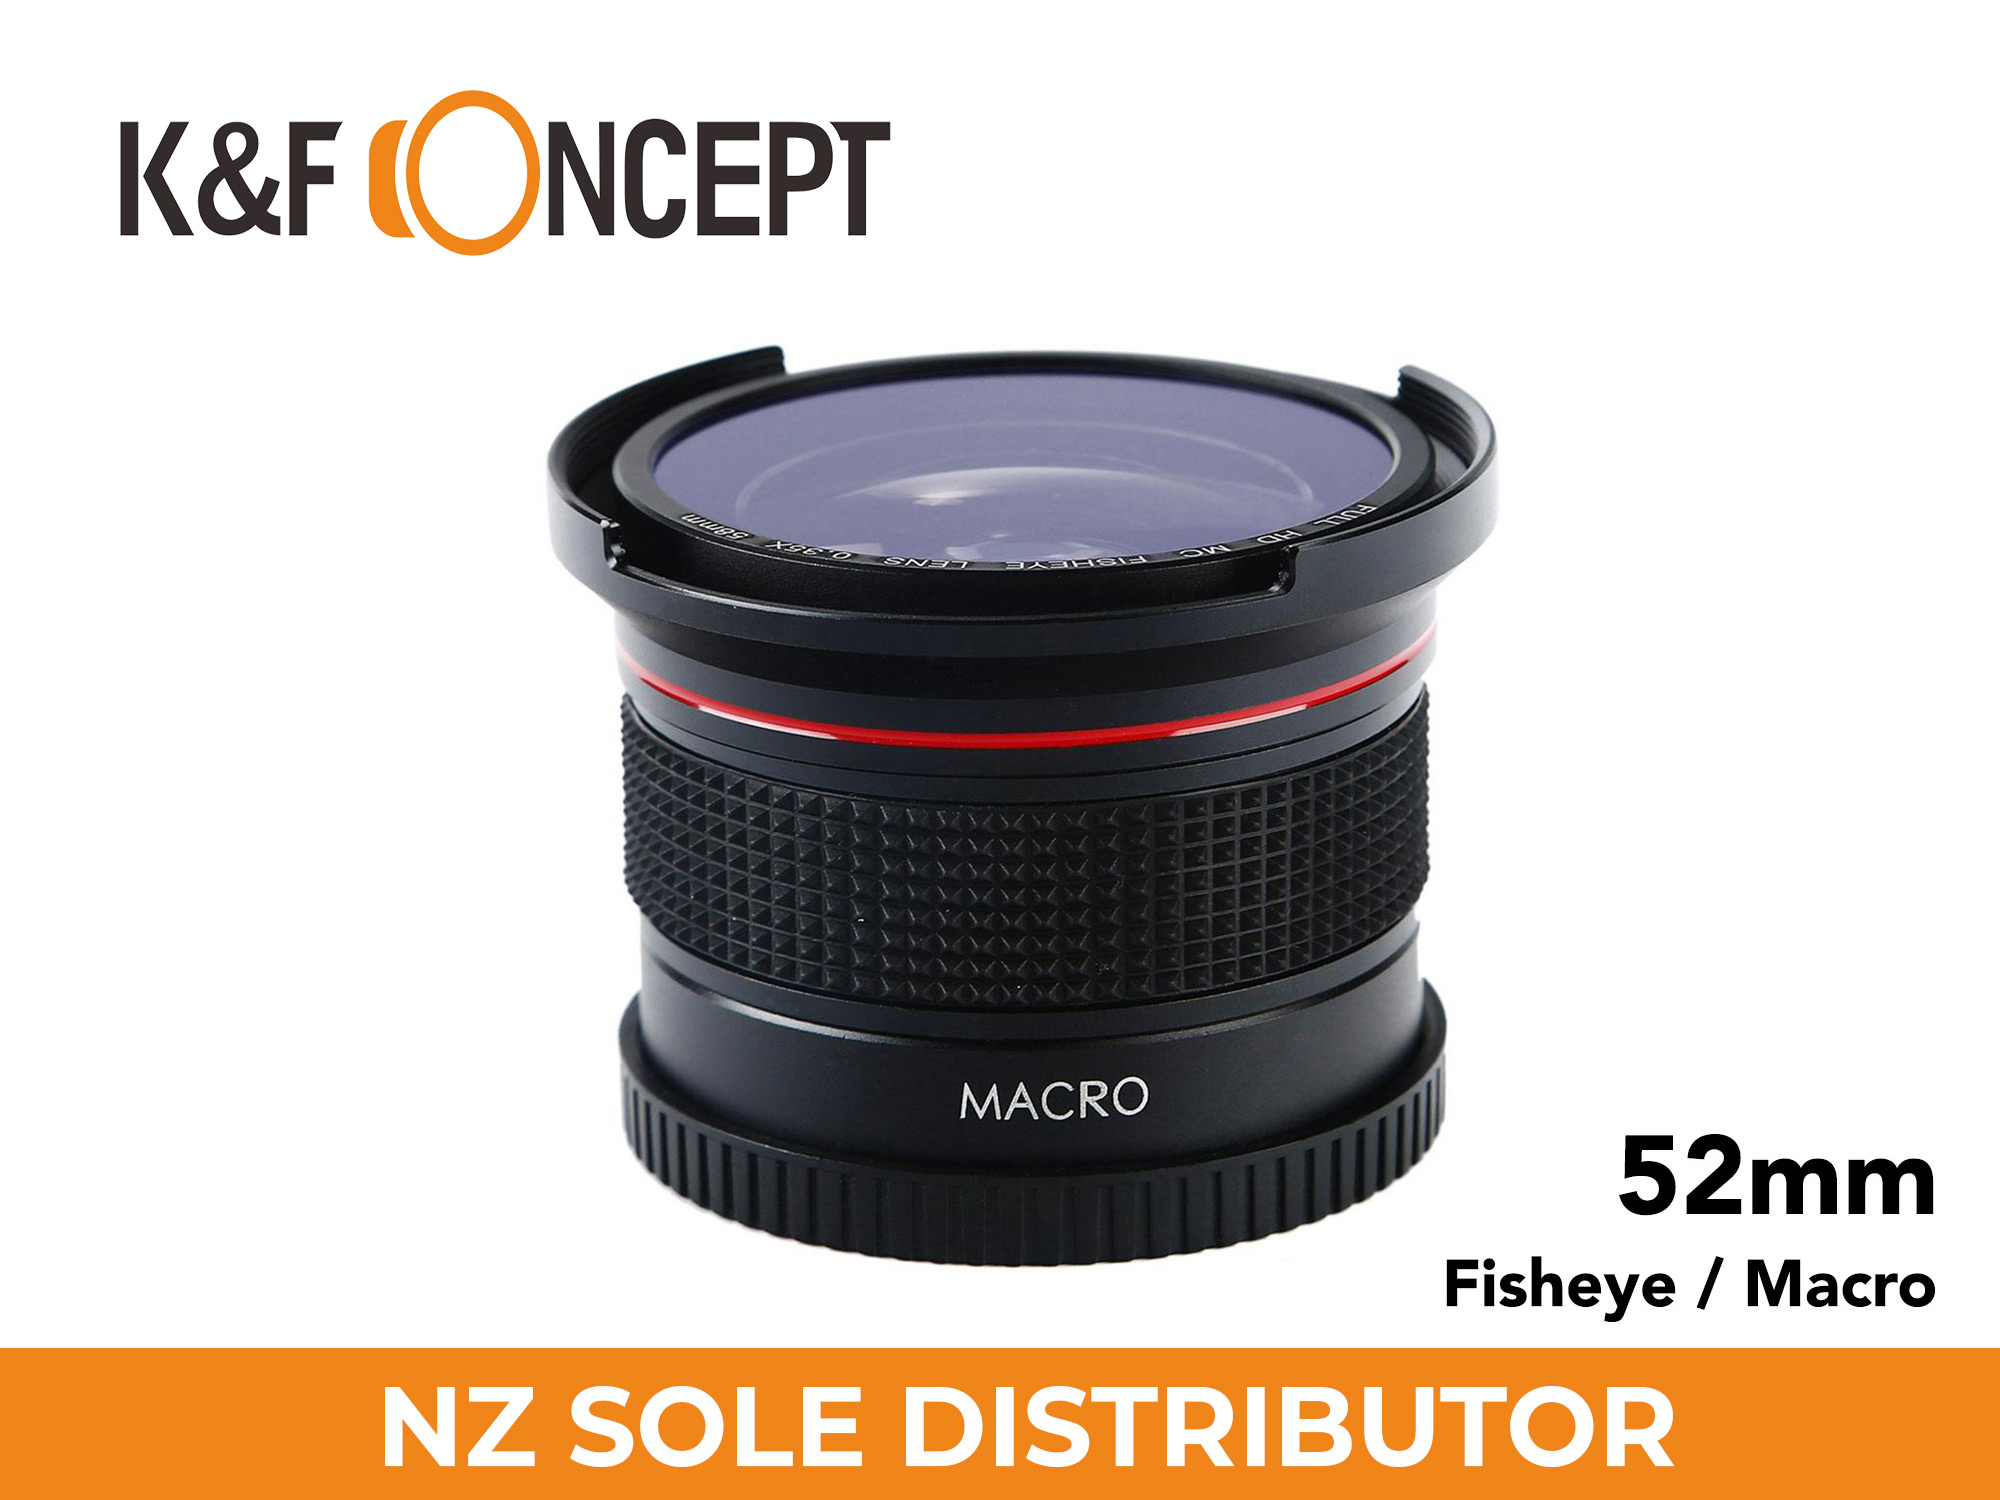 0.35X HD Fisheye Adapter Lens for 52mm lenses - K&F Concept